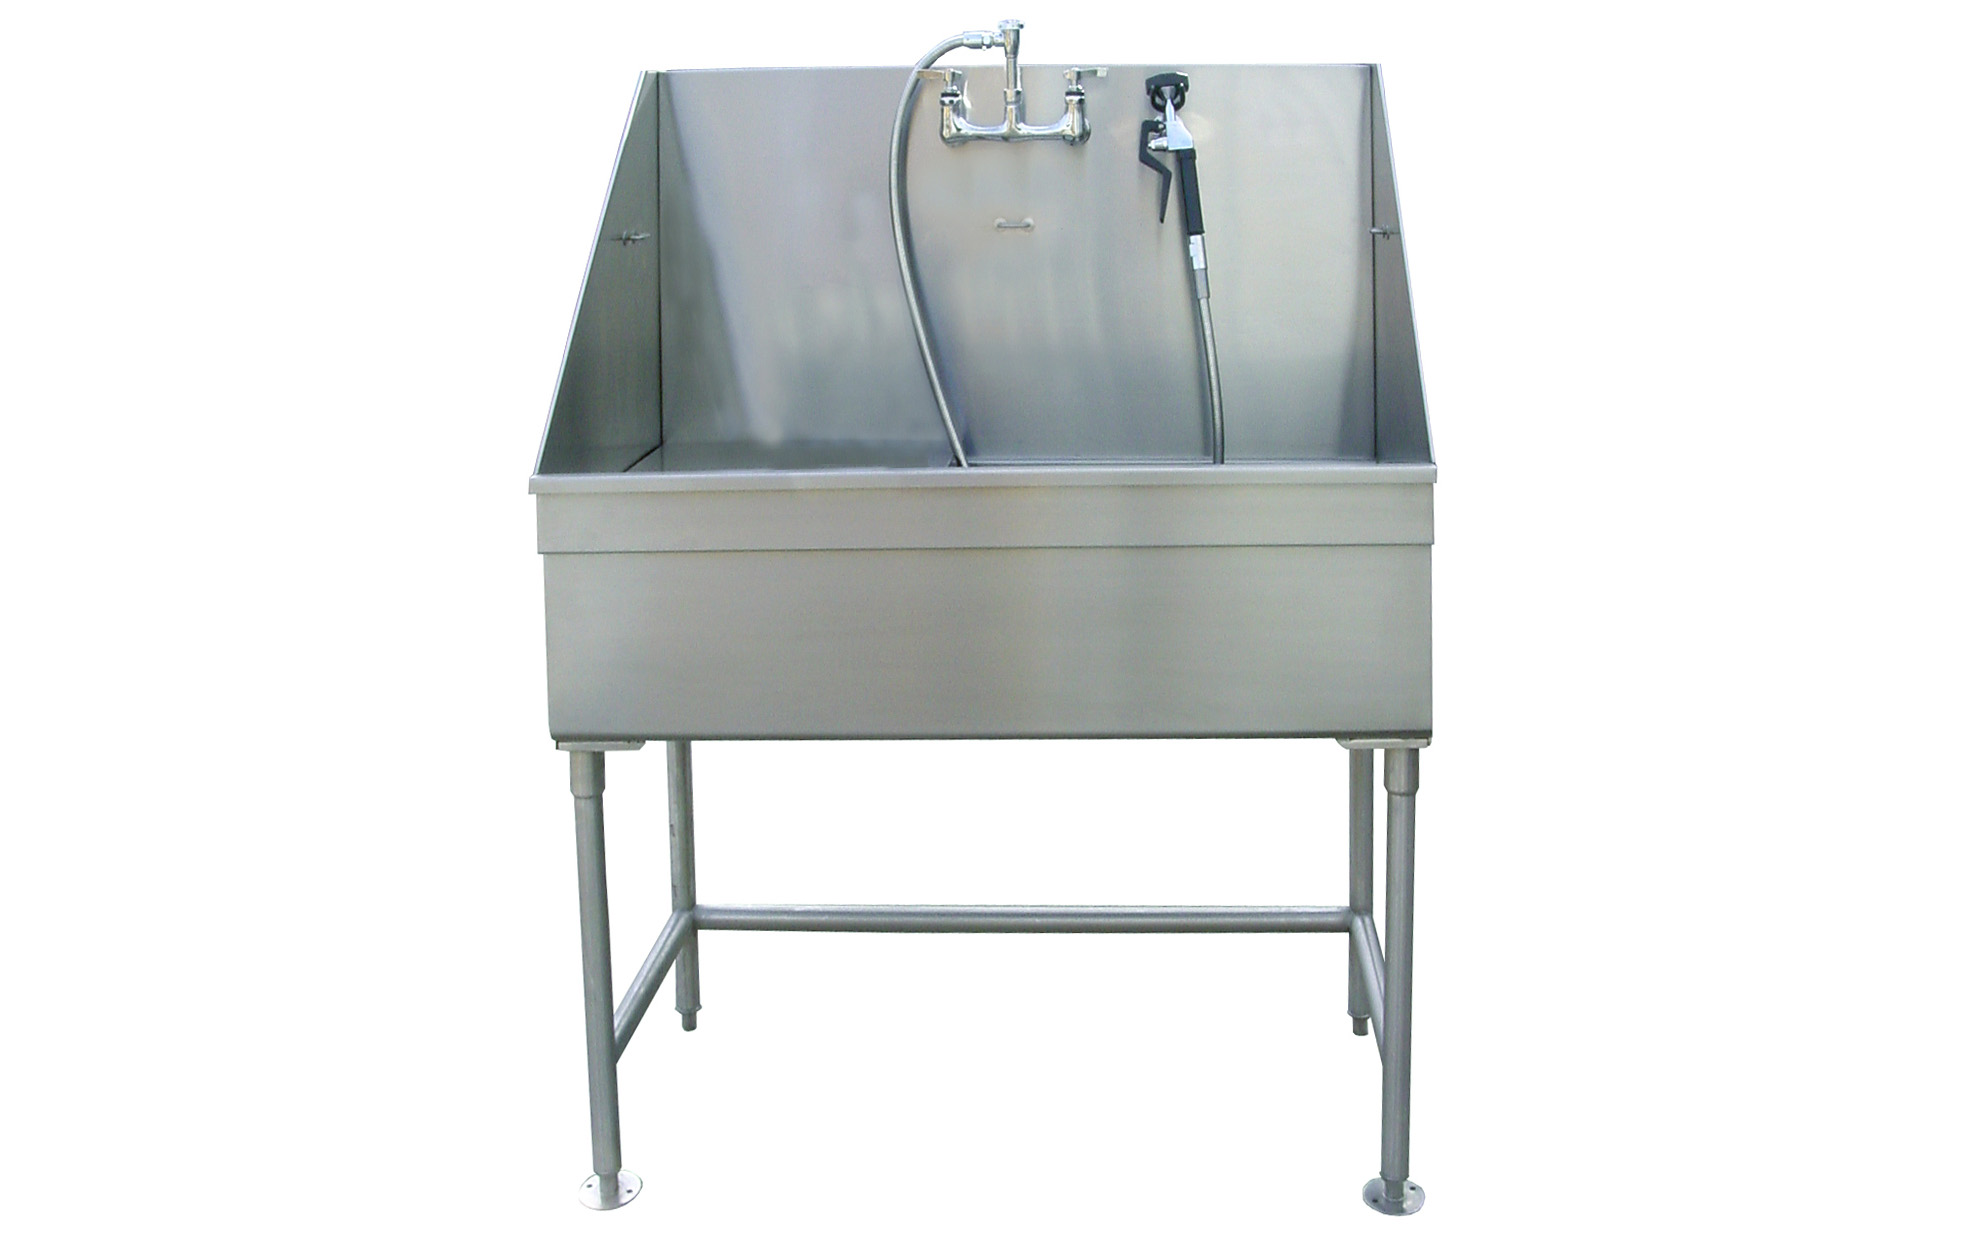 Stainless Steel Bathtubs For Dogs Thevote